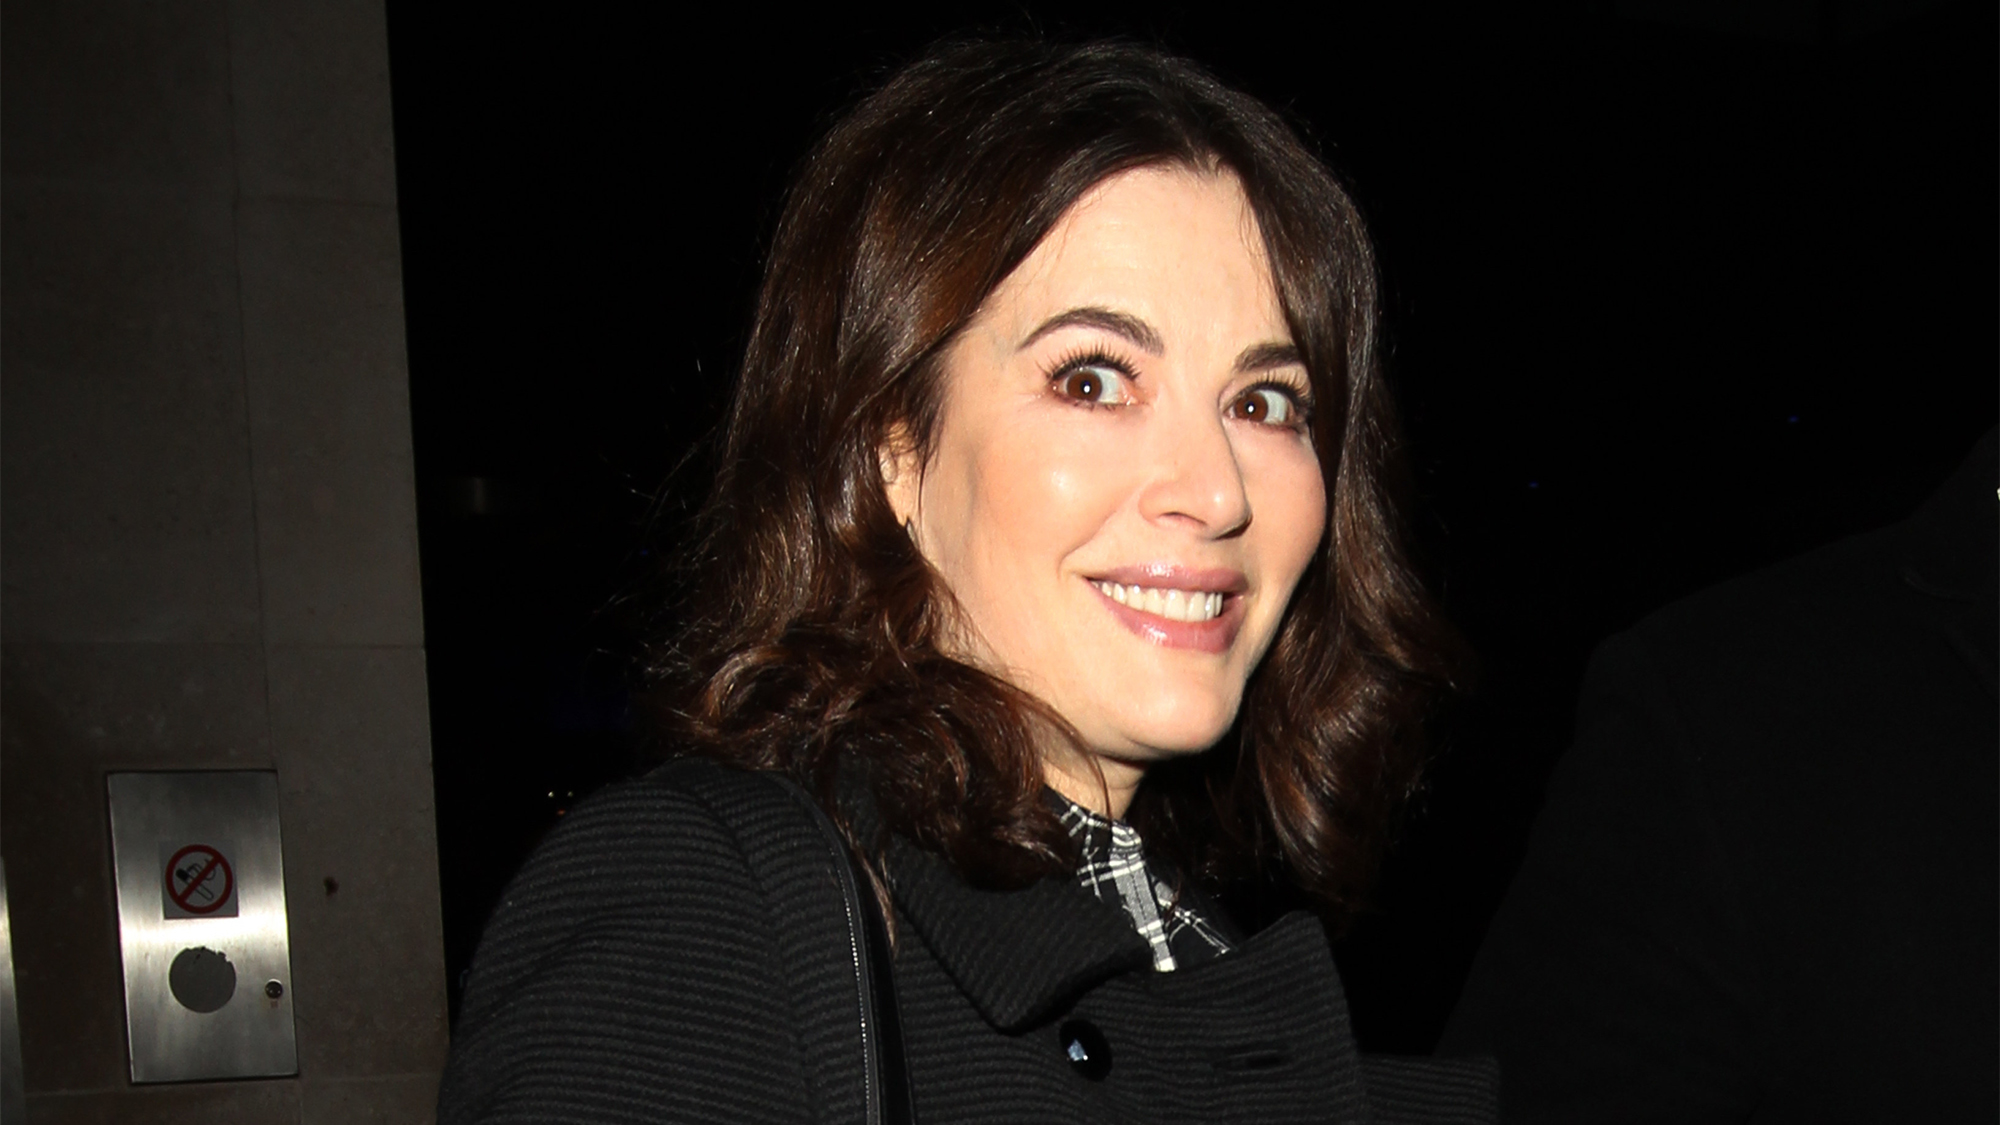 Nigella Lawson has caused outrage with her unusual tea habit